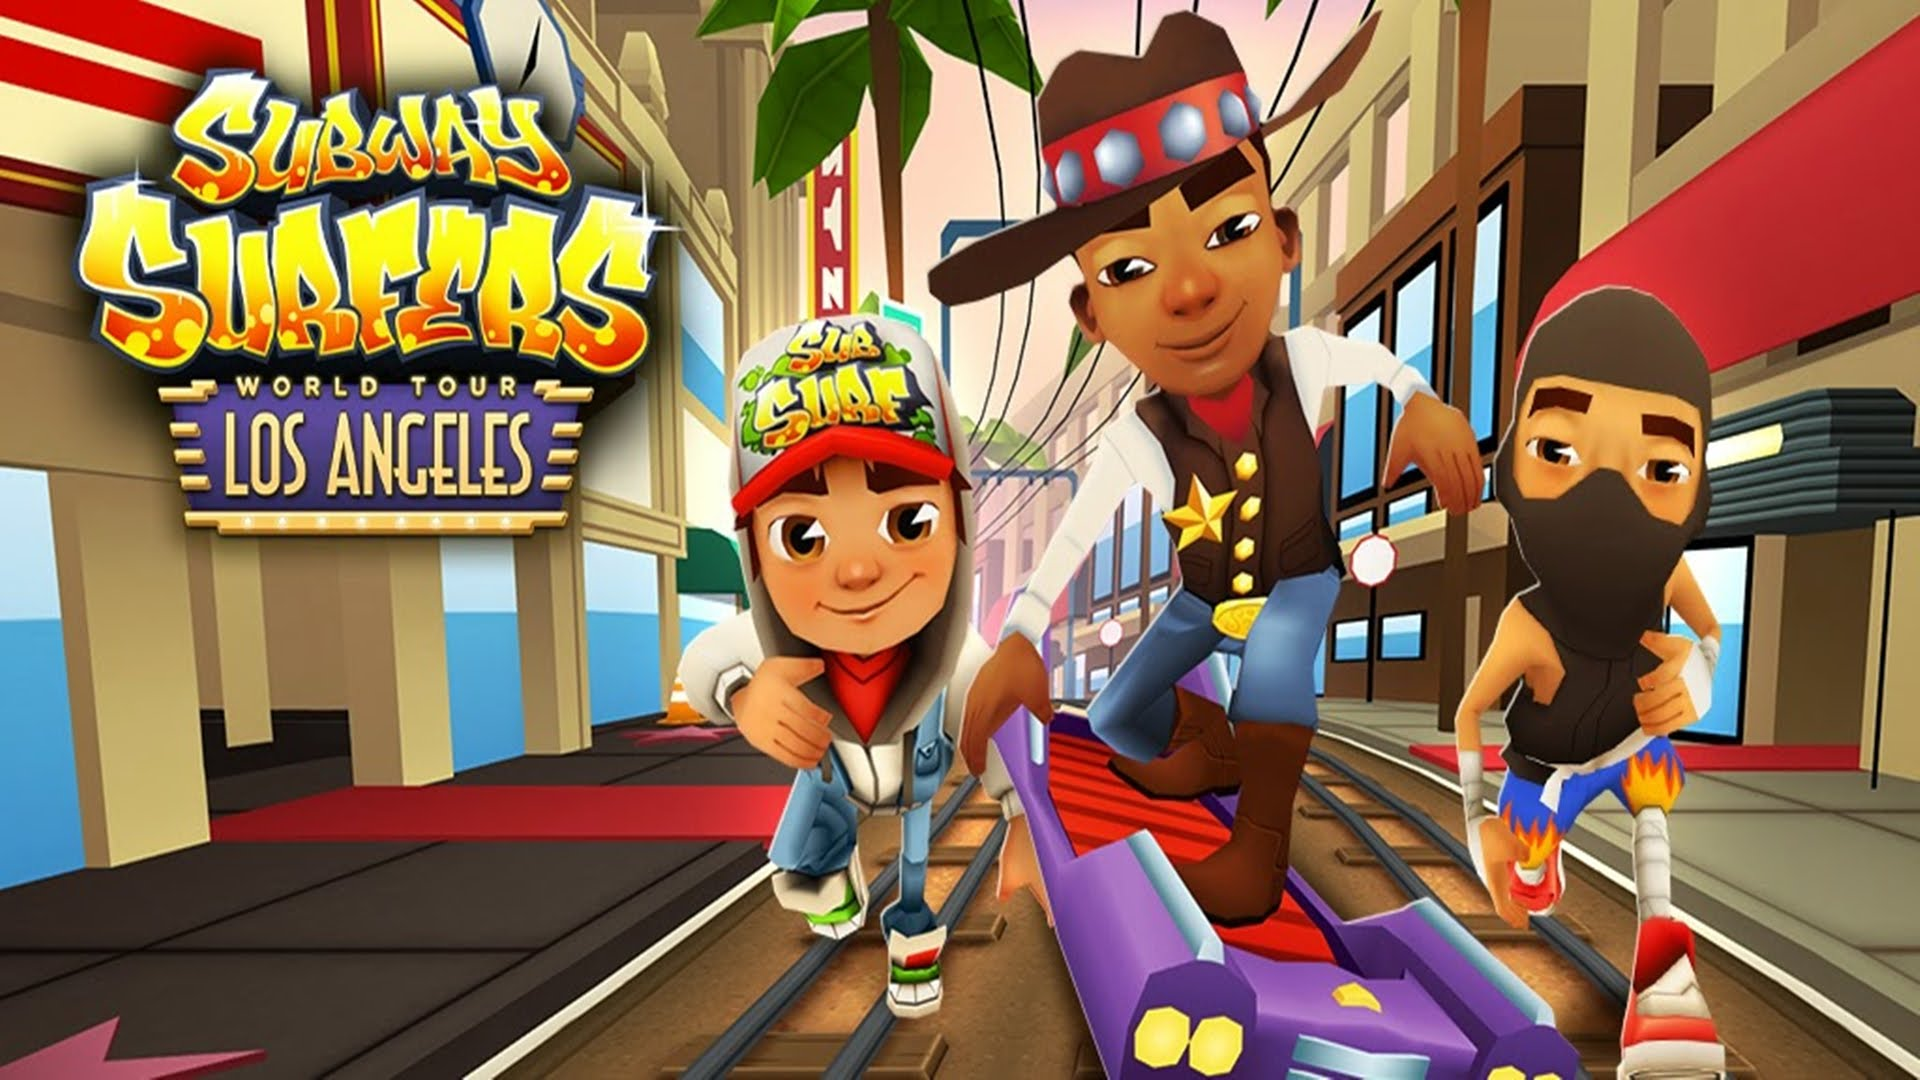 Subway Surfers Game 2 Subway Surfers Game